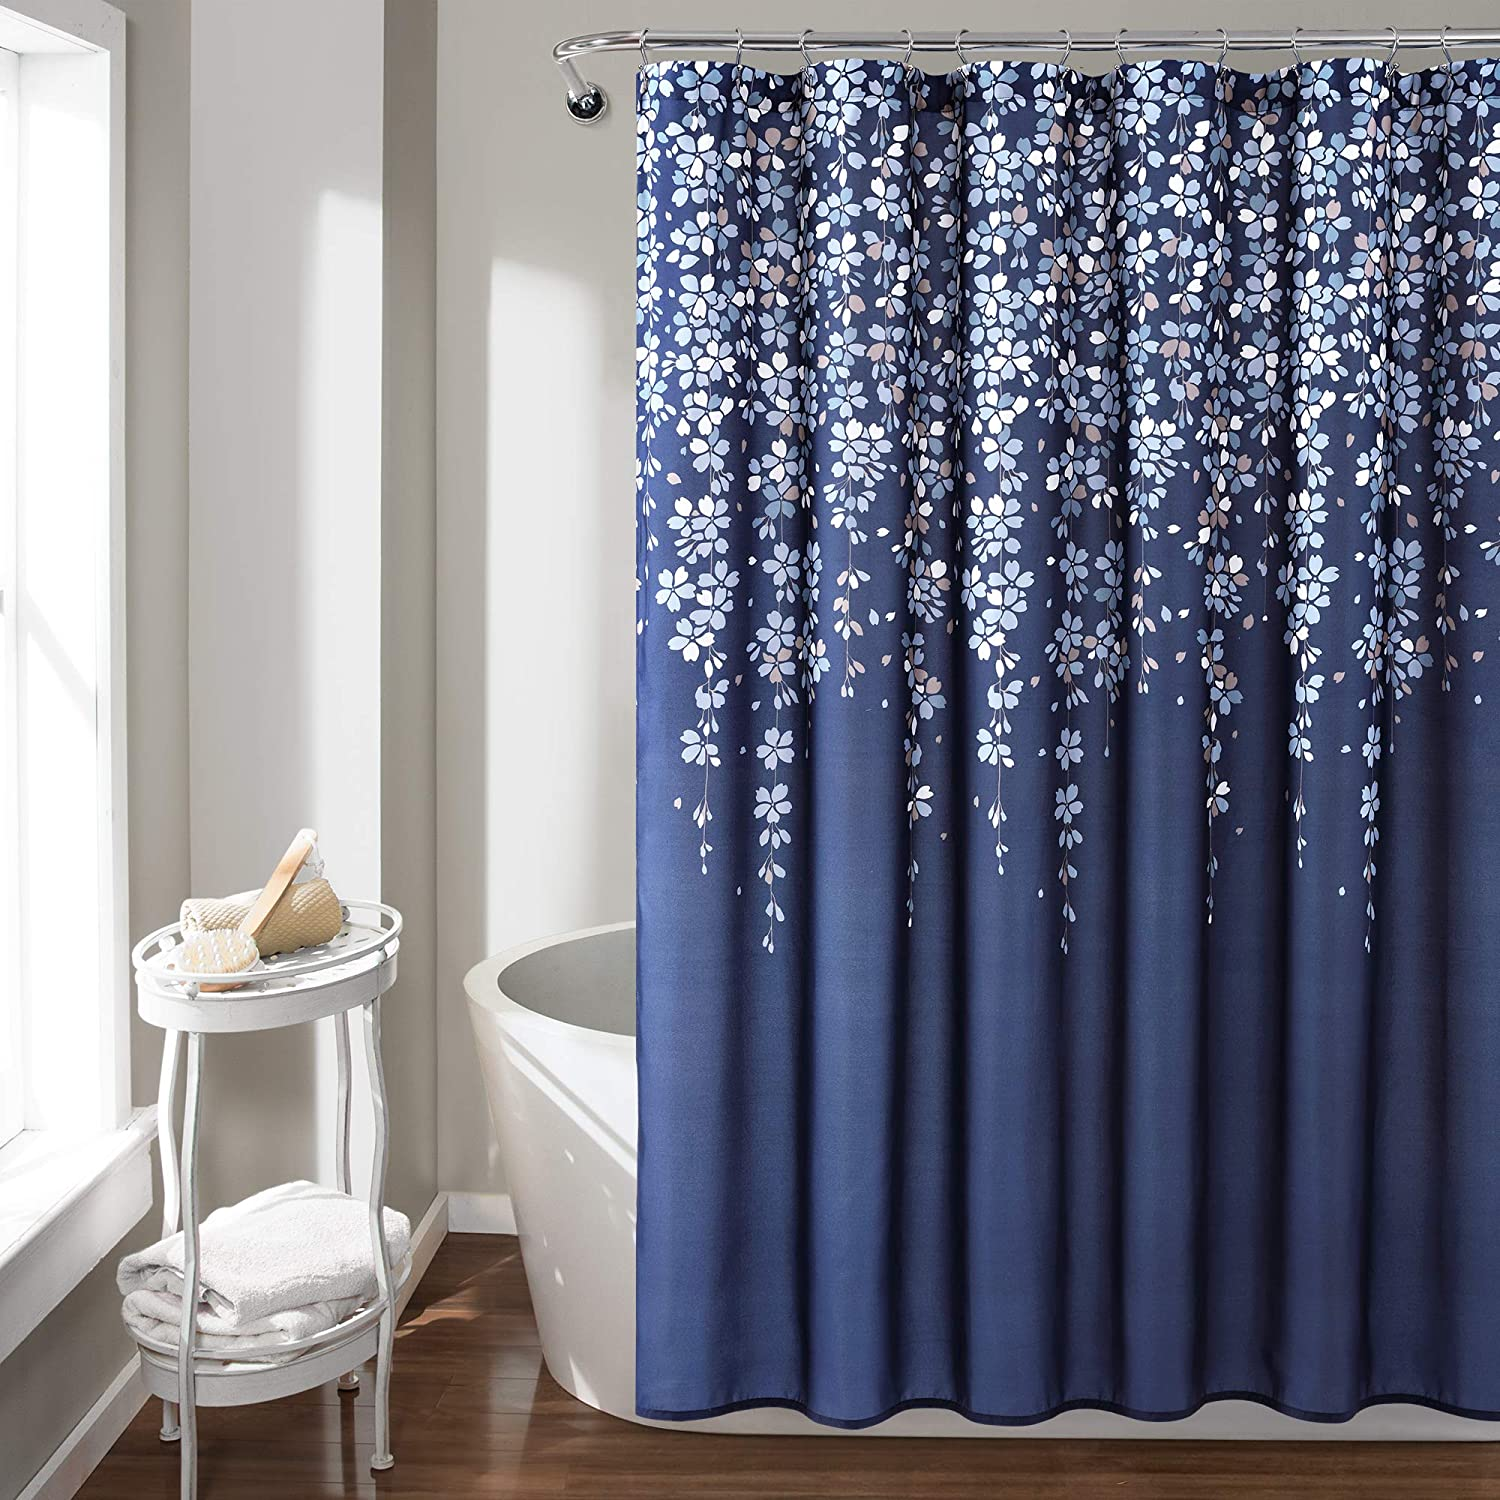 Lush Decor, Navy Weeping Flower Shower Curtain-Fabric Floral Vine Print Design, x 72